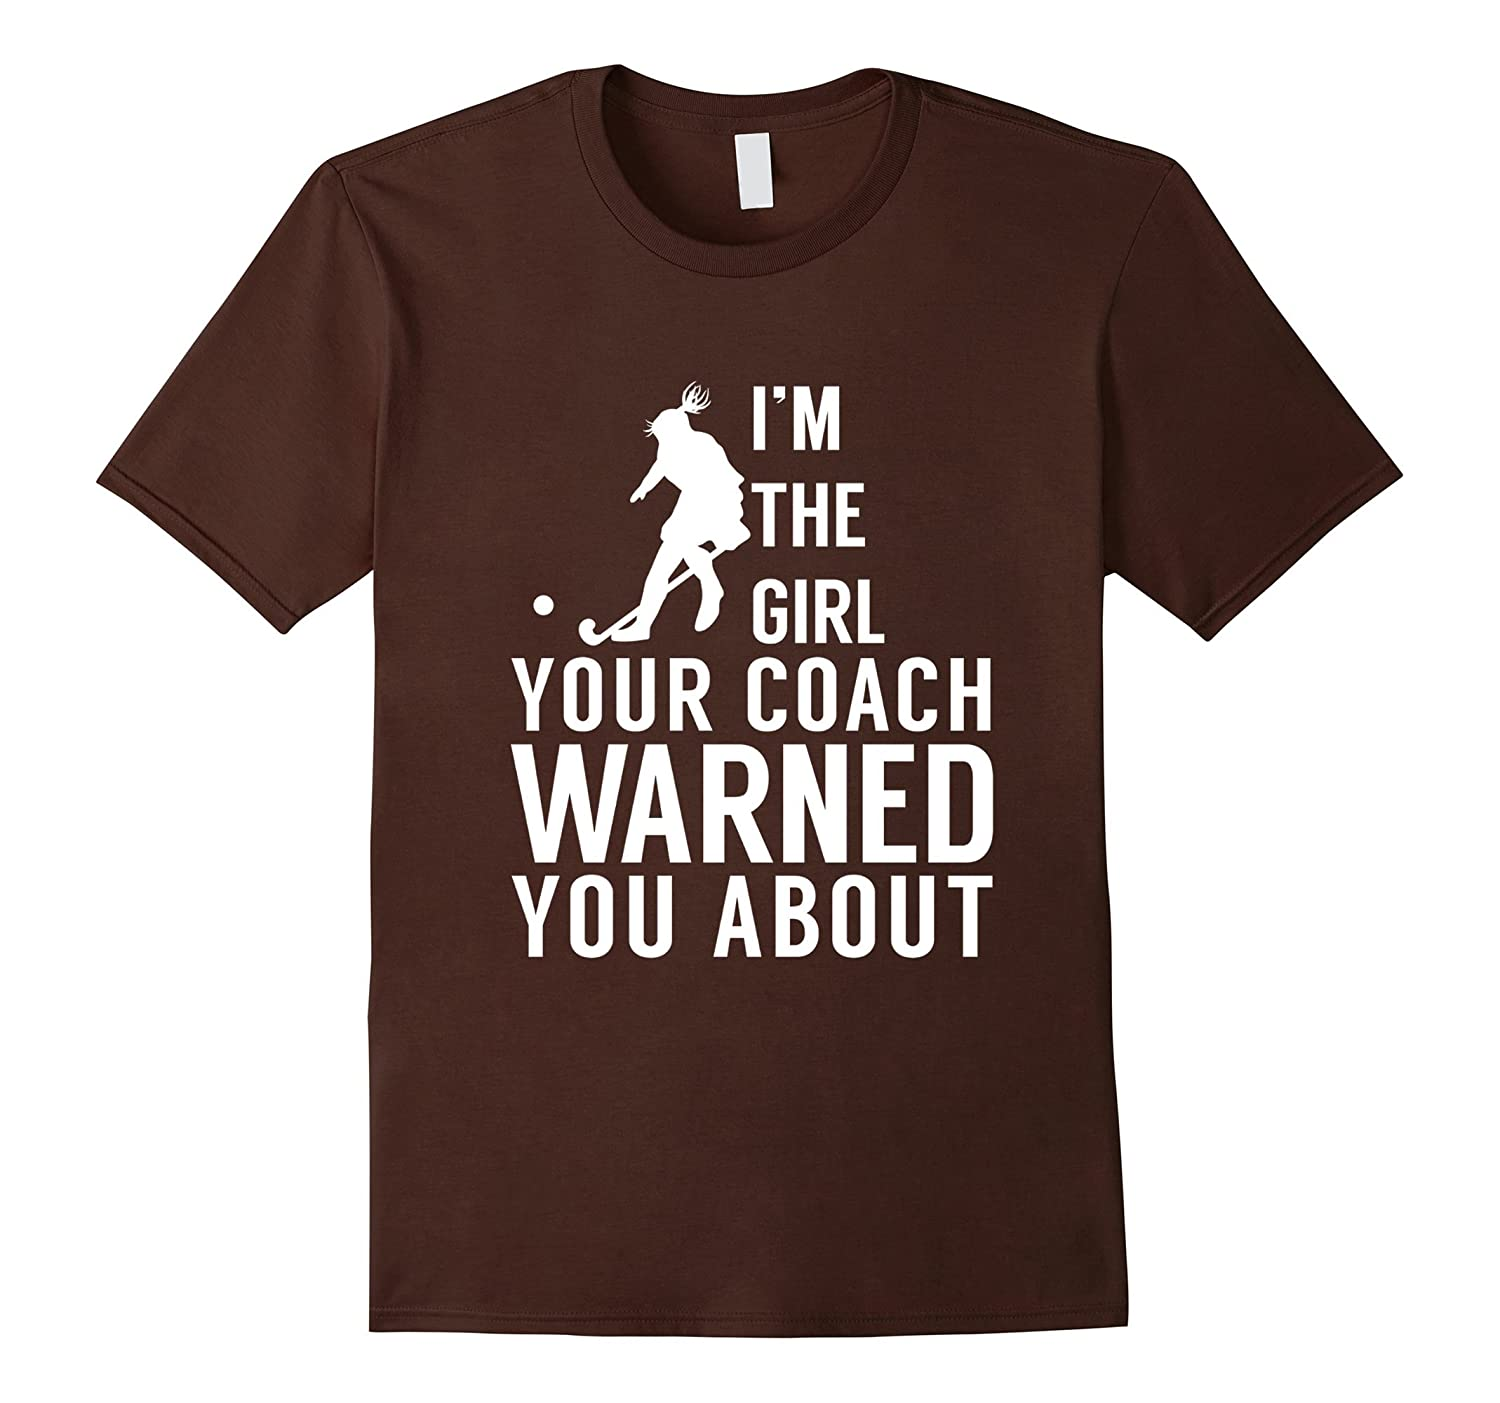 Field Hockey Shirts The Girl Your Coach Warned You About-Vaci